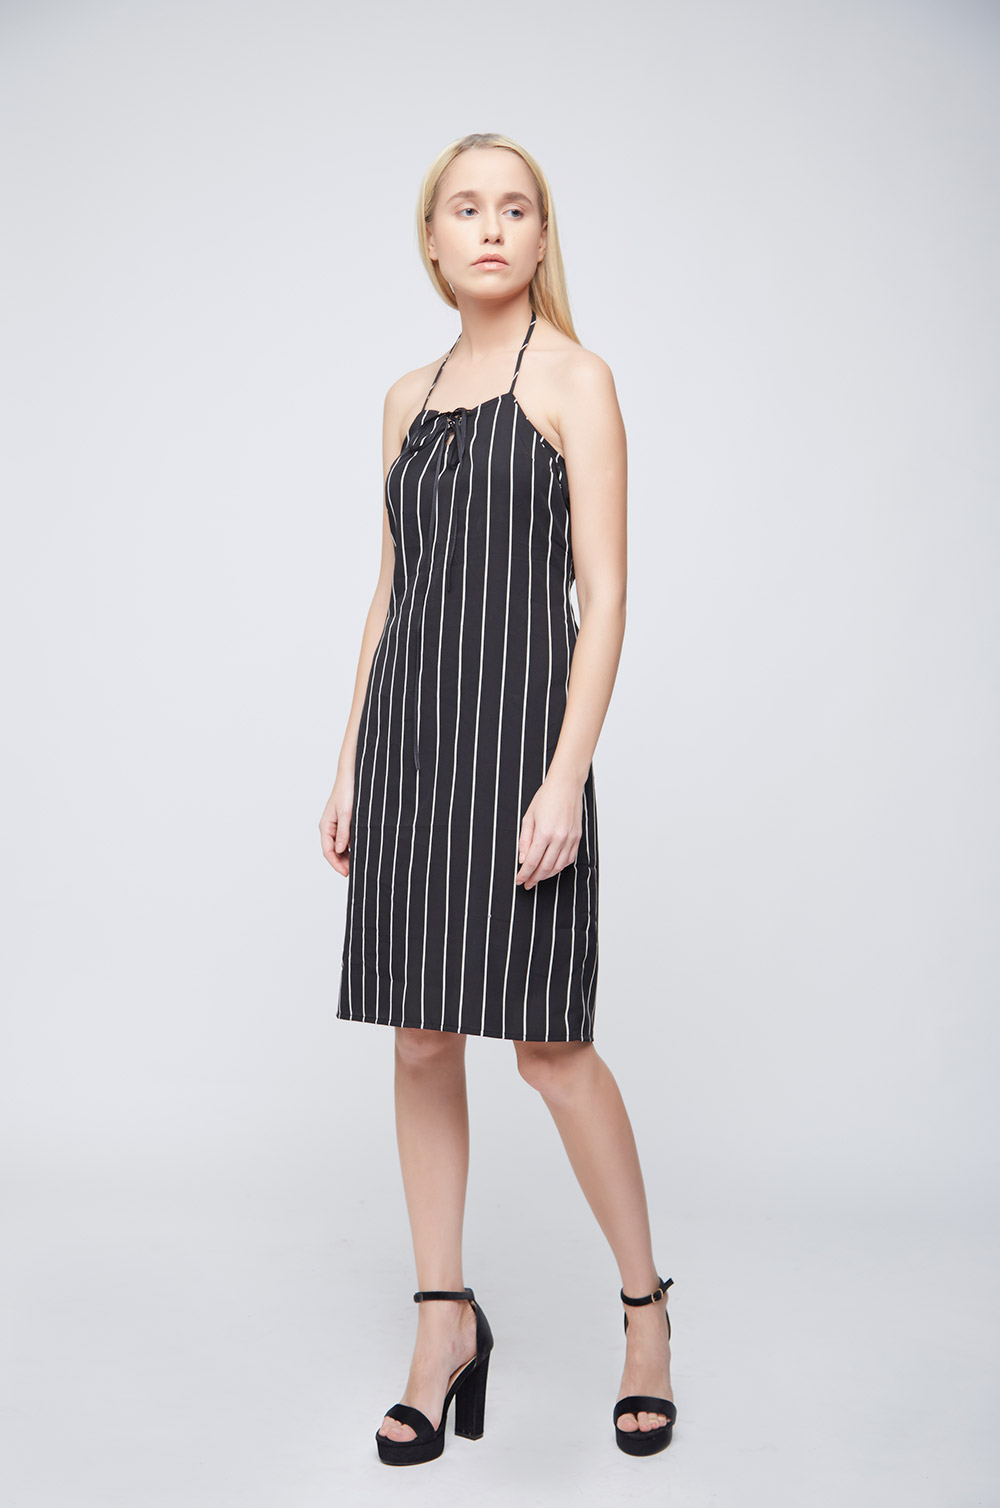 Black White Stripes Ramona Dress -2